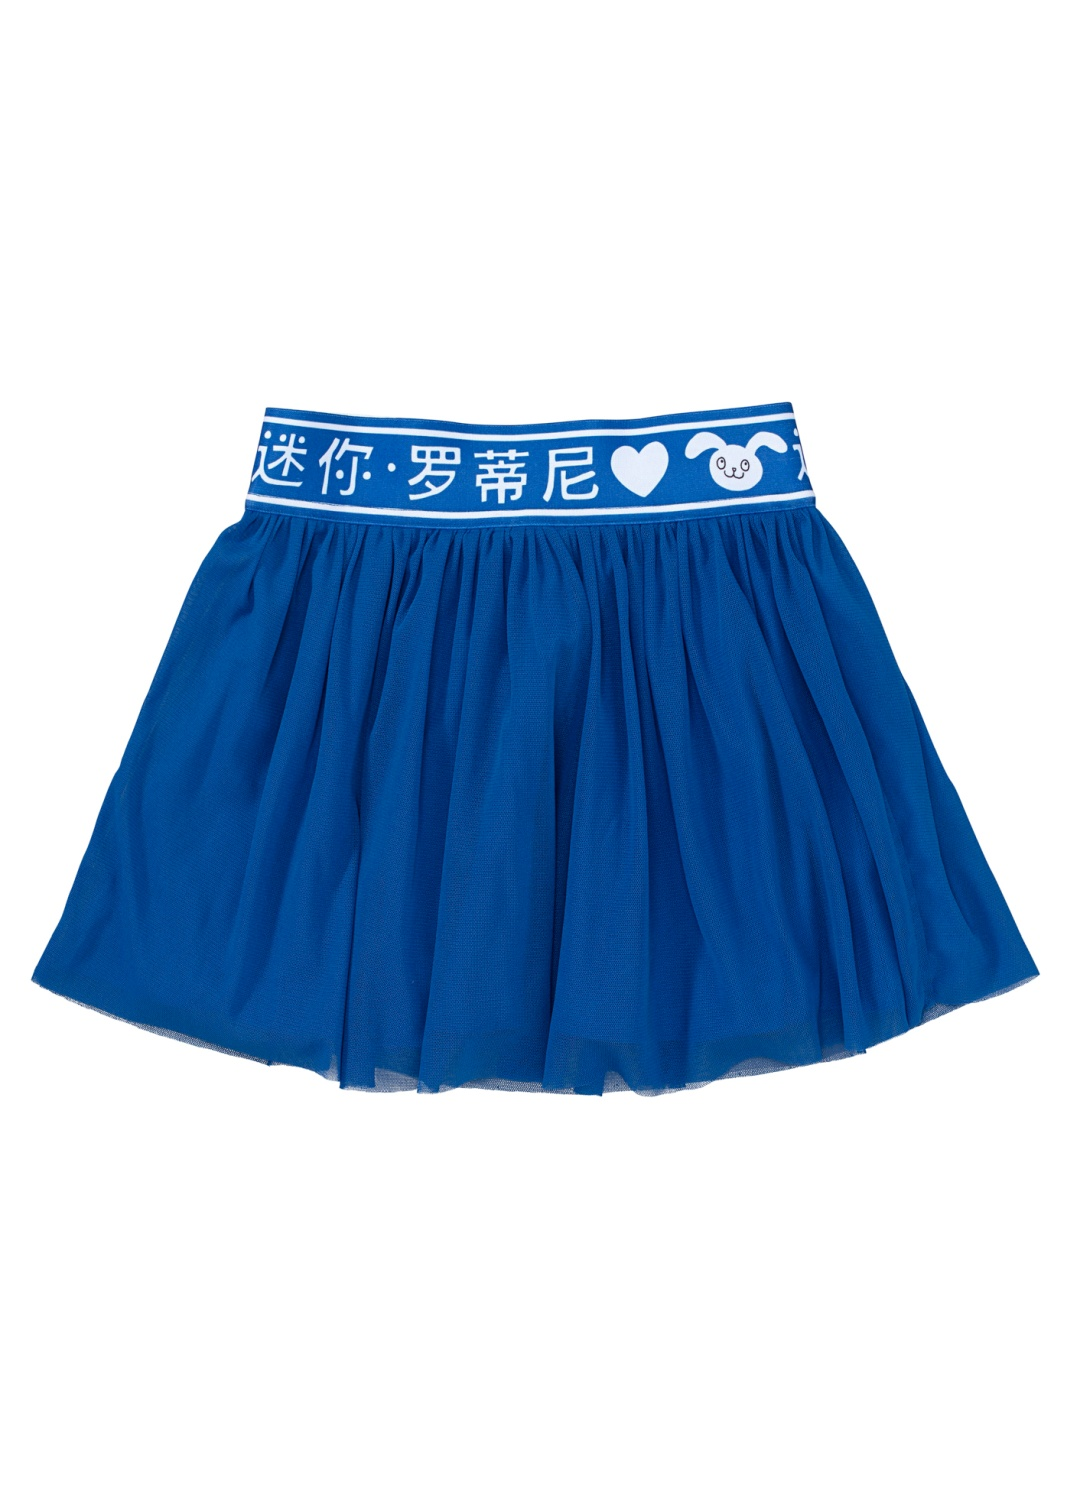 Tulle skirt image number 1